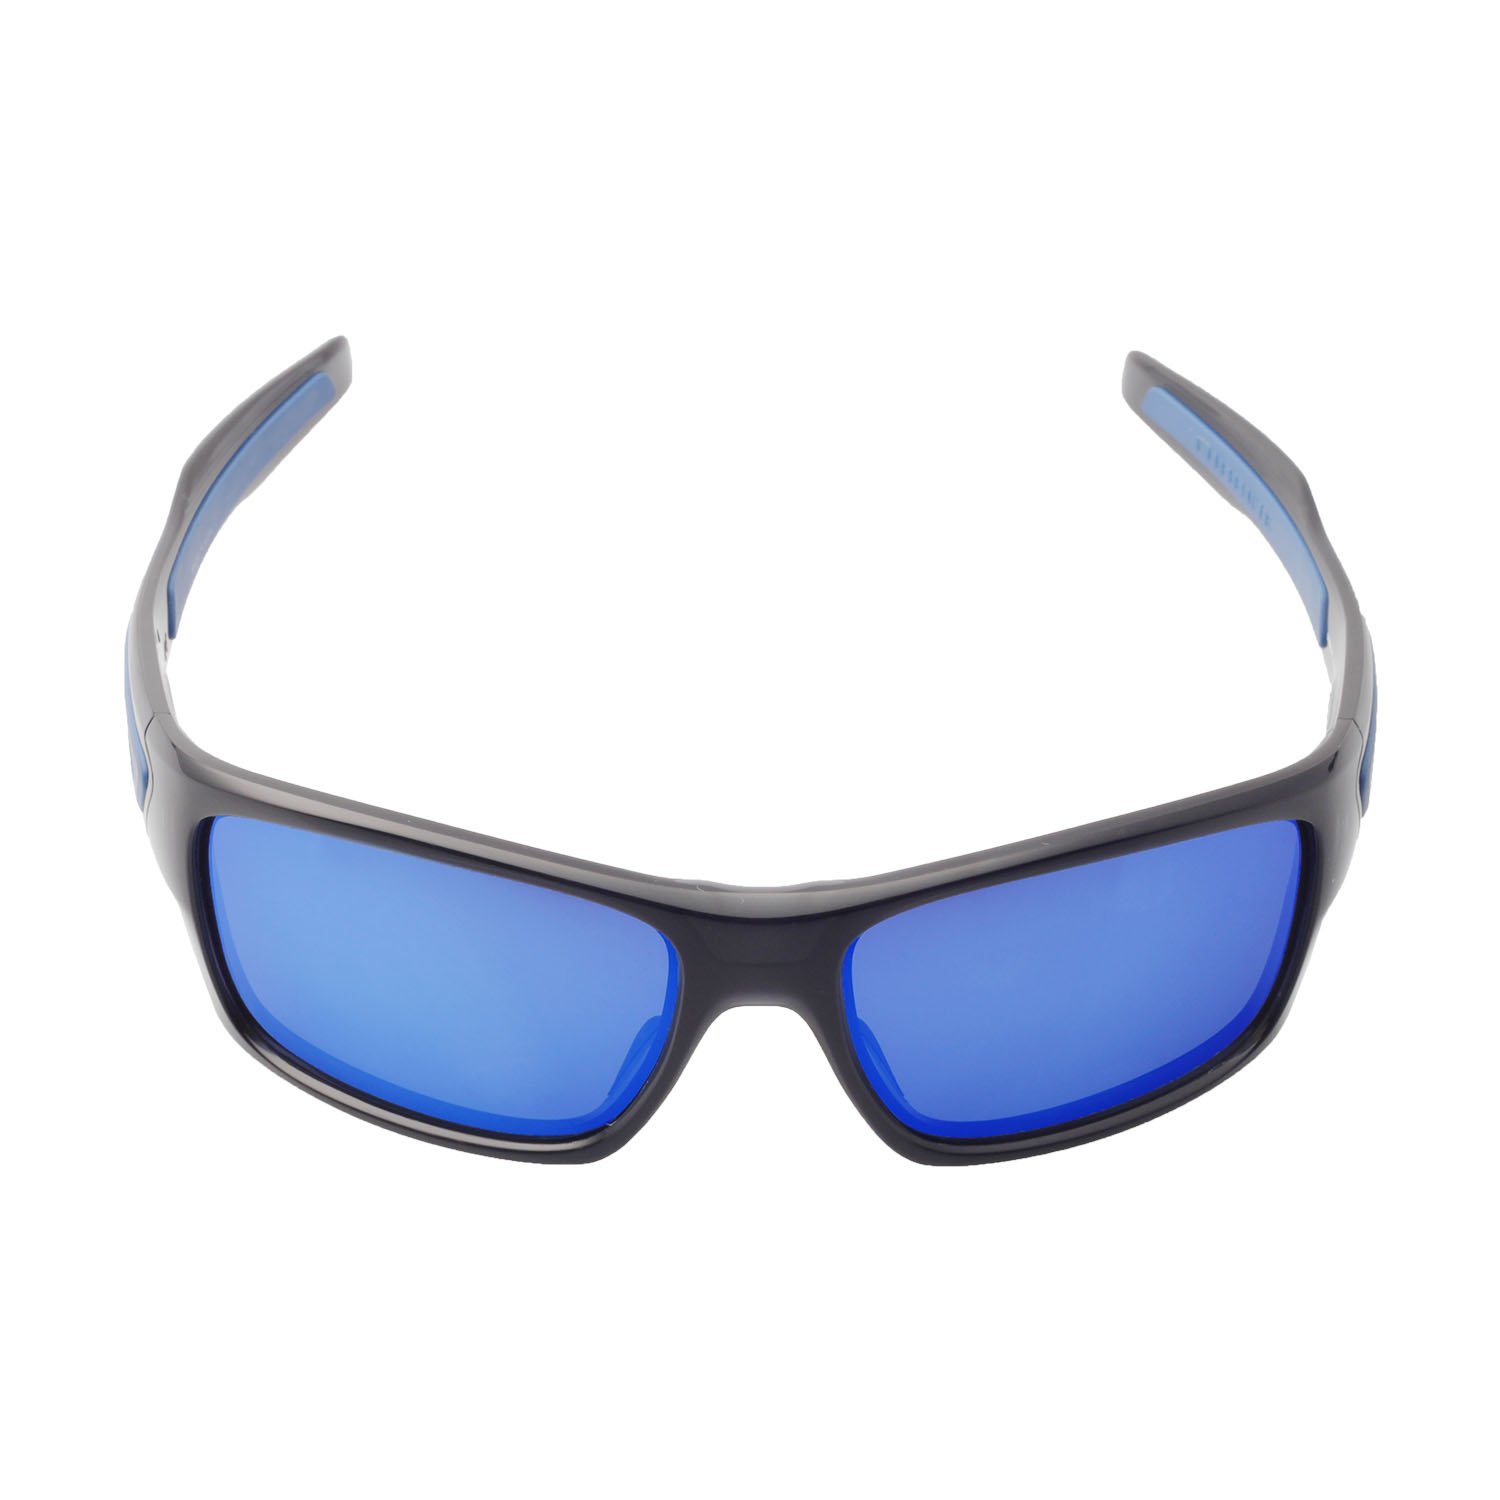 f741142f81 Walleva Polarized Ice Blue Replacement Lenses For Oakley Turbine ...